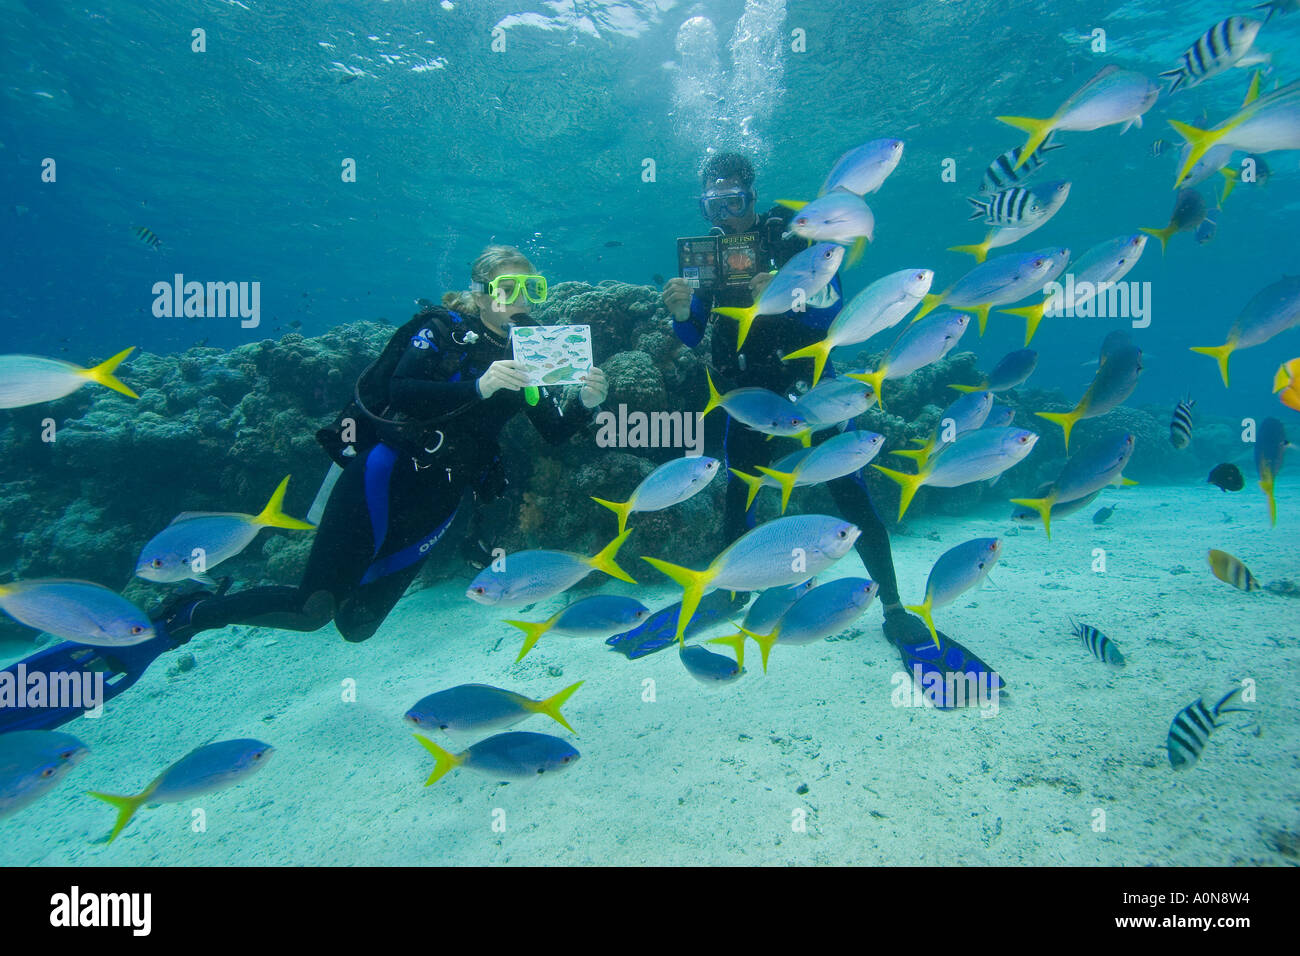 Divers (MR) with fish identification book/ card, Palau, Micronesia. - Stock Image